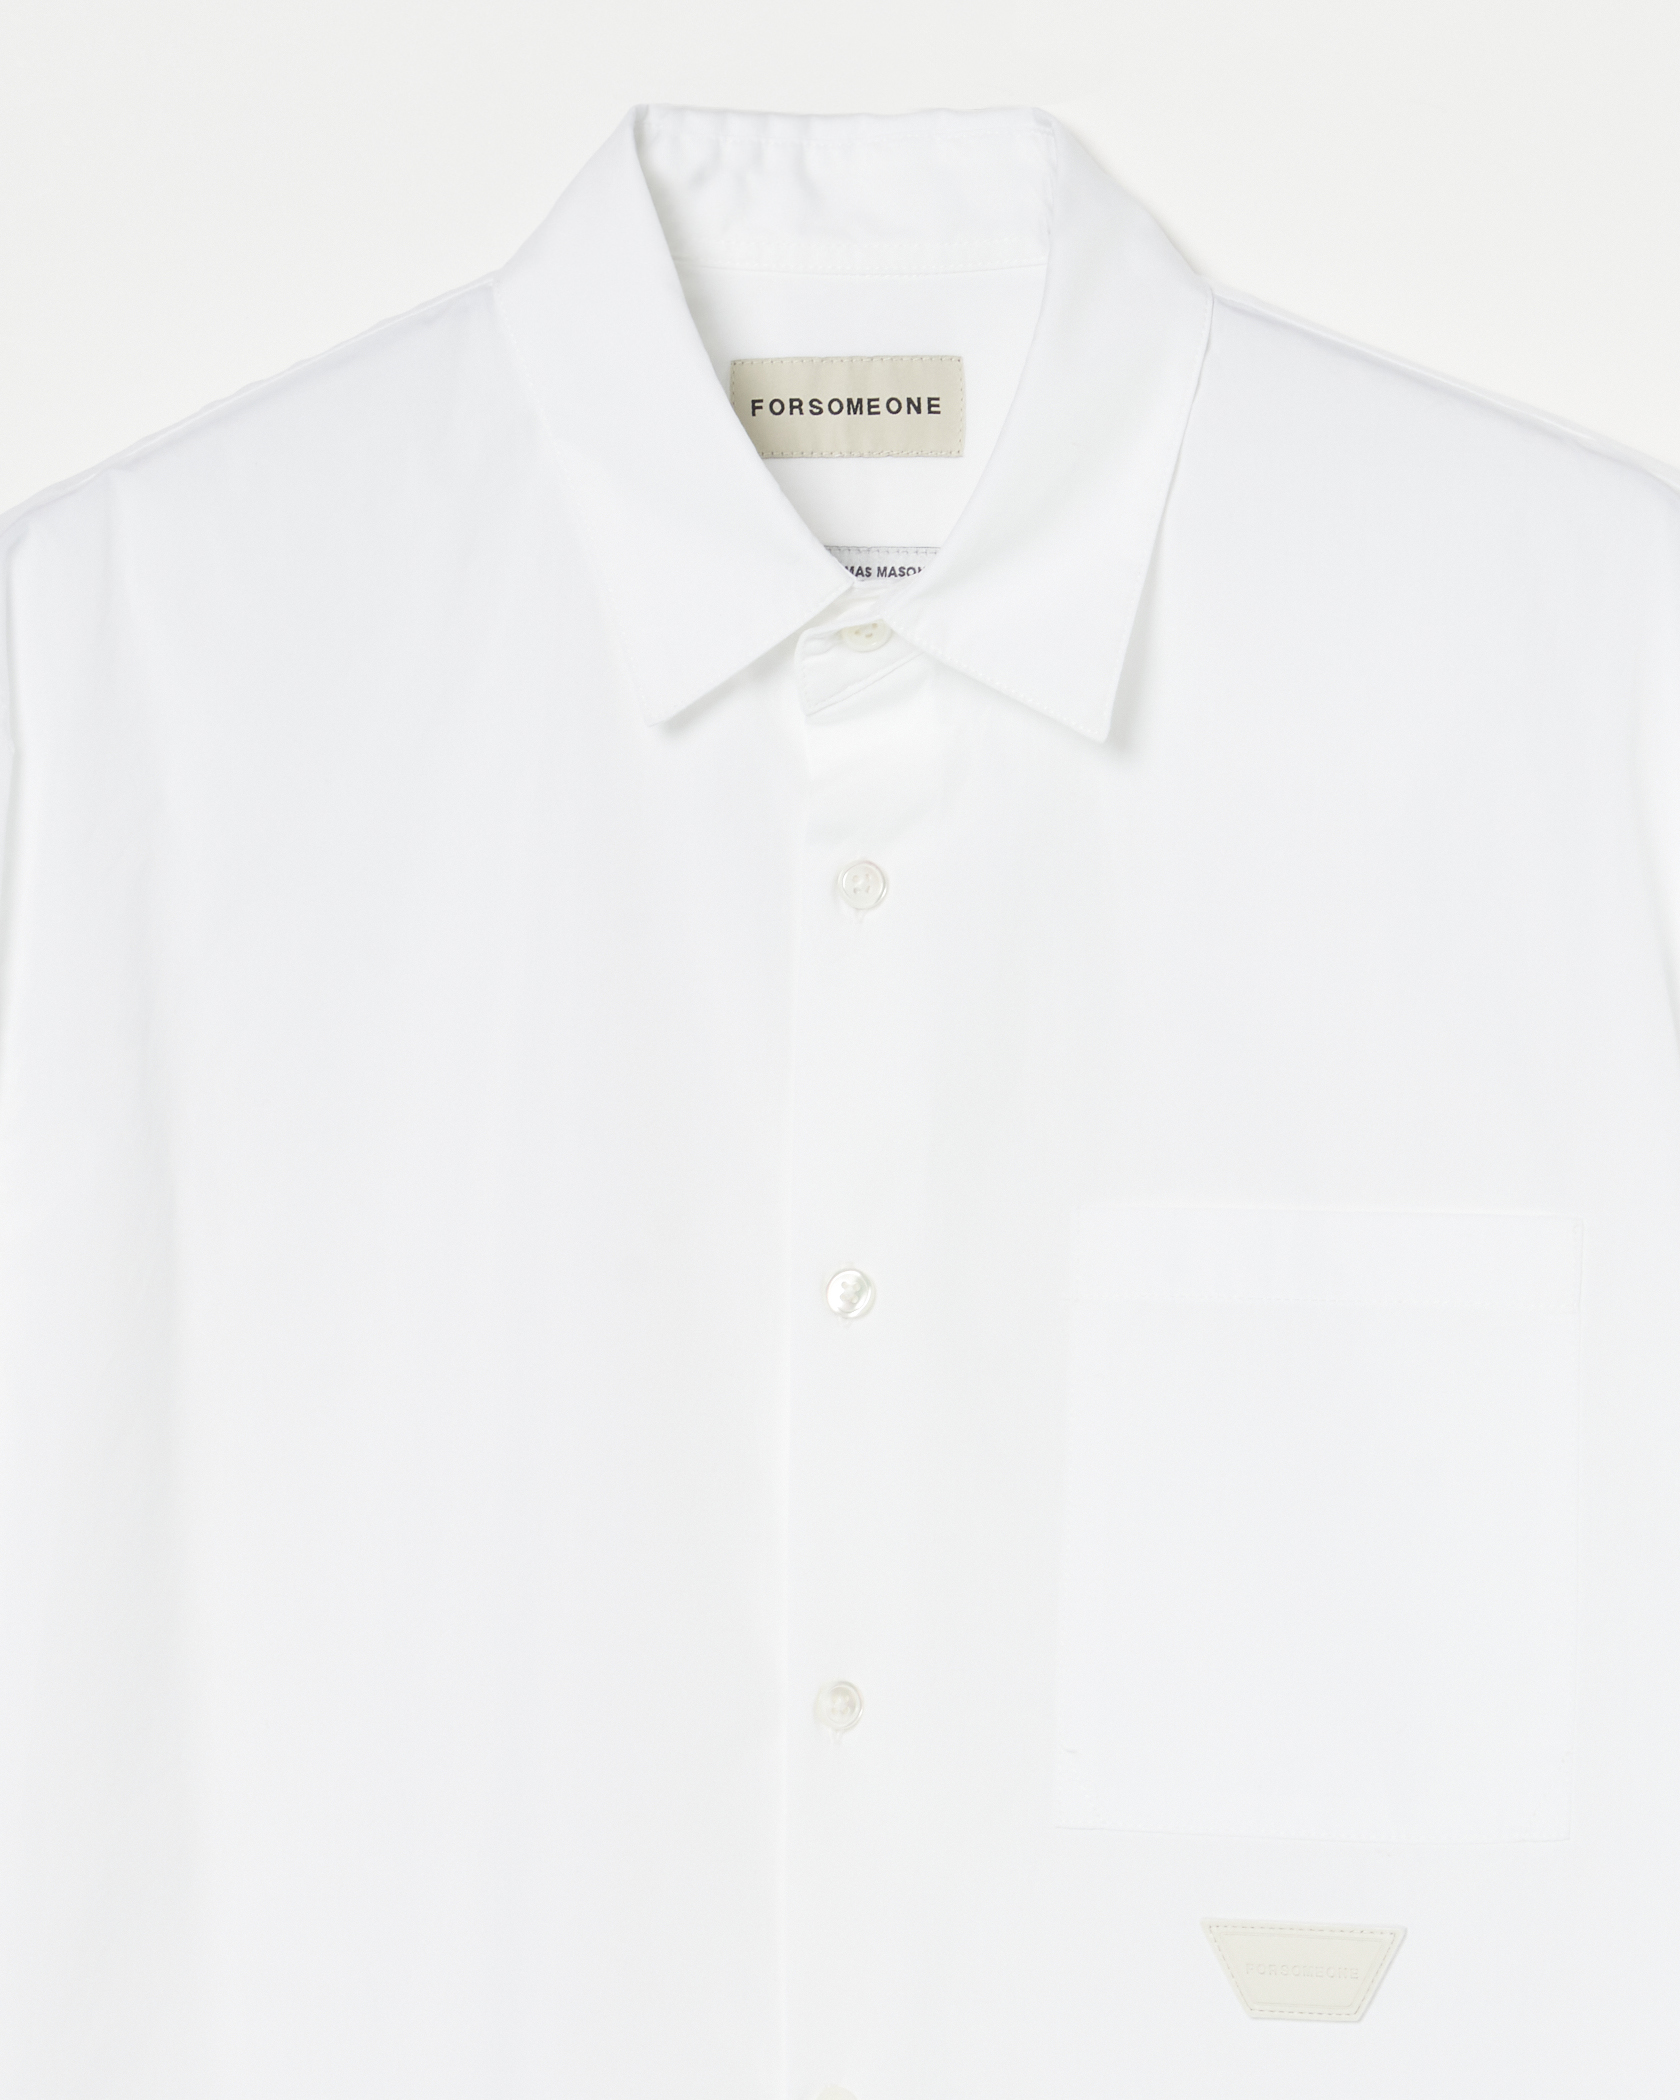 THOMAS BROAD SHIRT 詳細画像 Beige 11